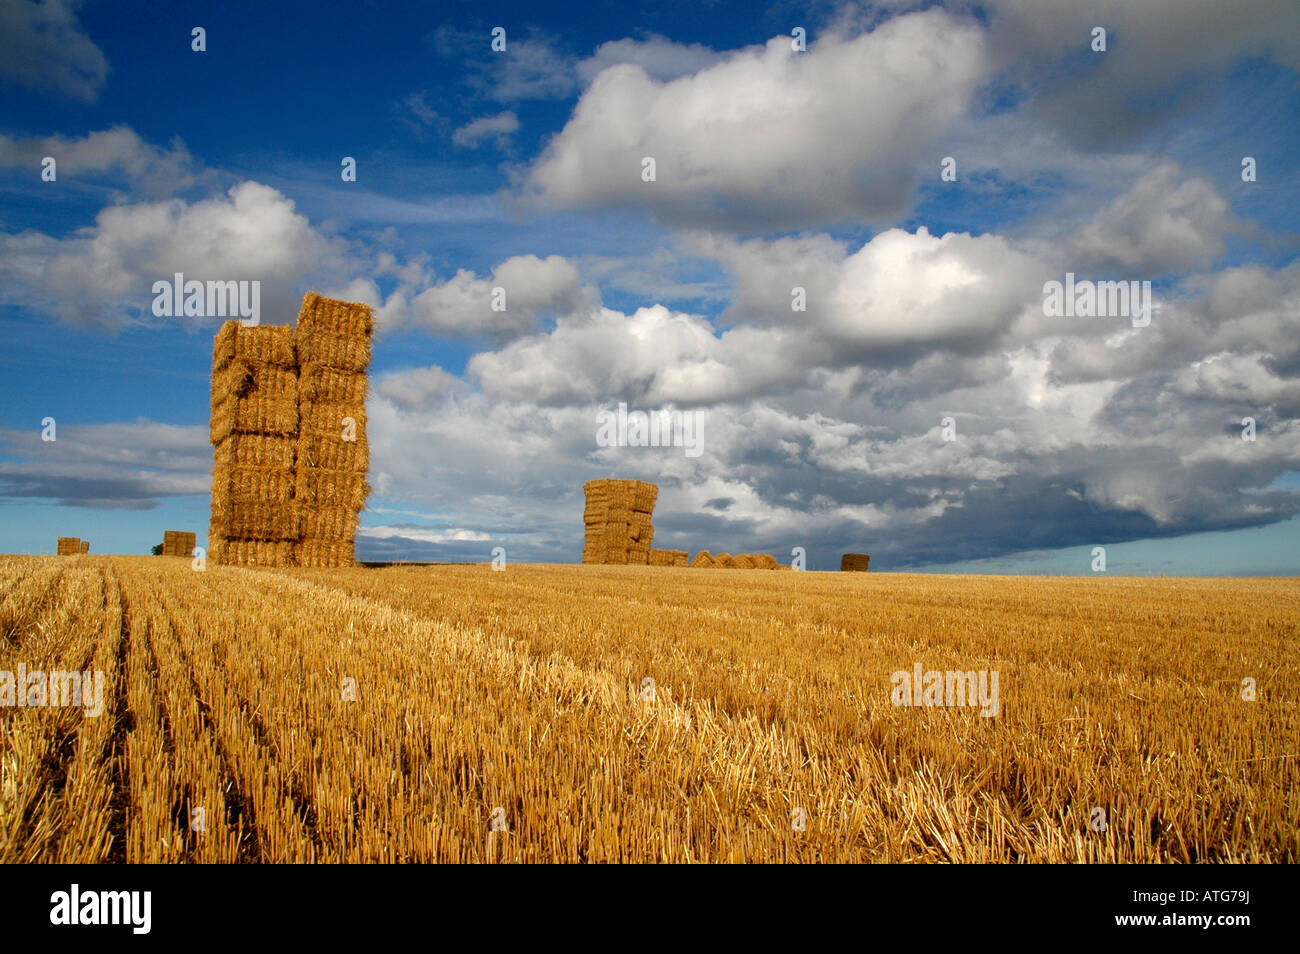 Huge towering haystacks sit under a summers sky in a hay stubbled field. - Stock Image